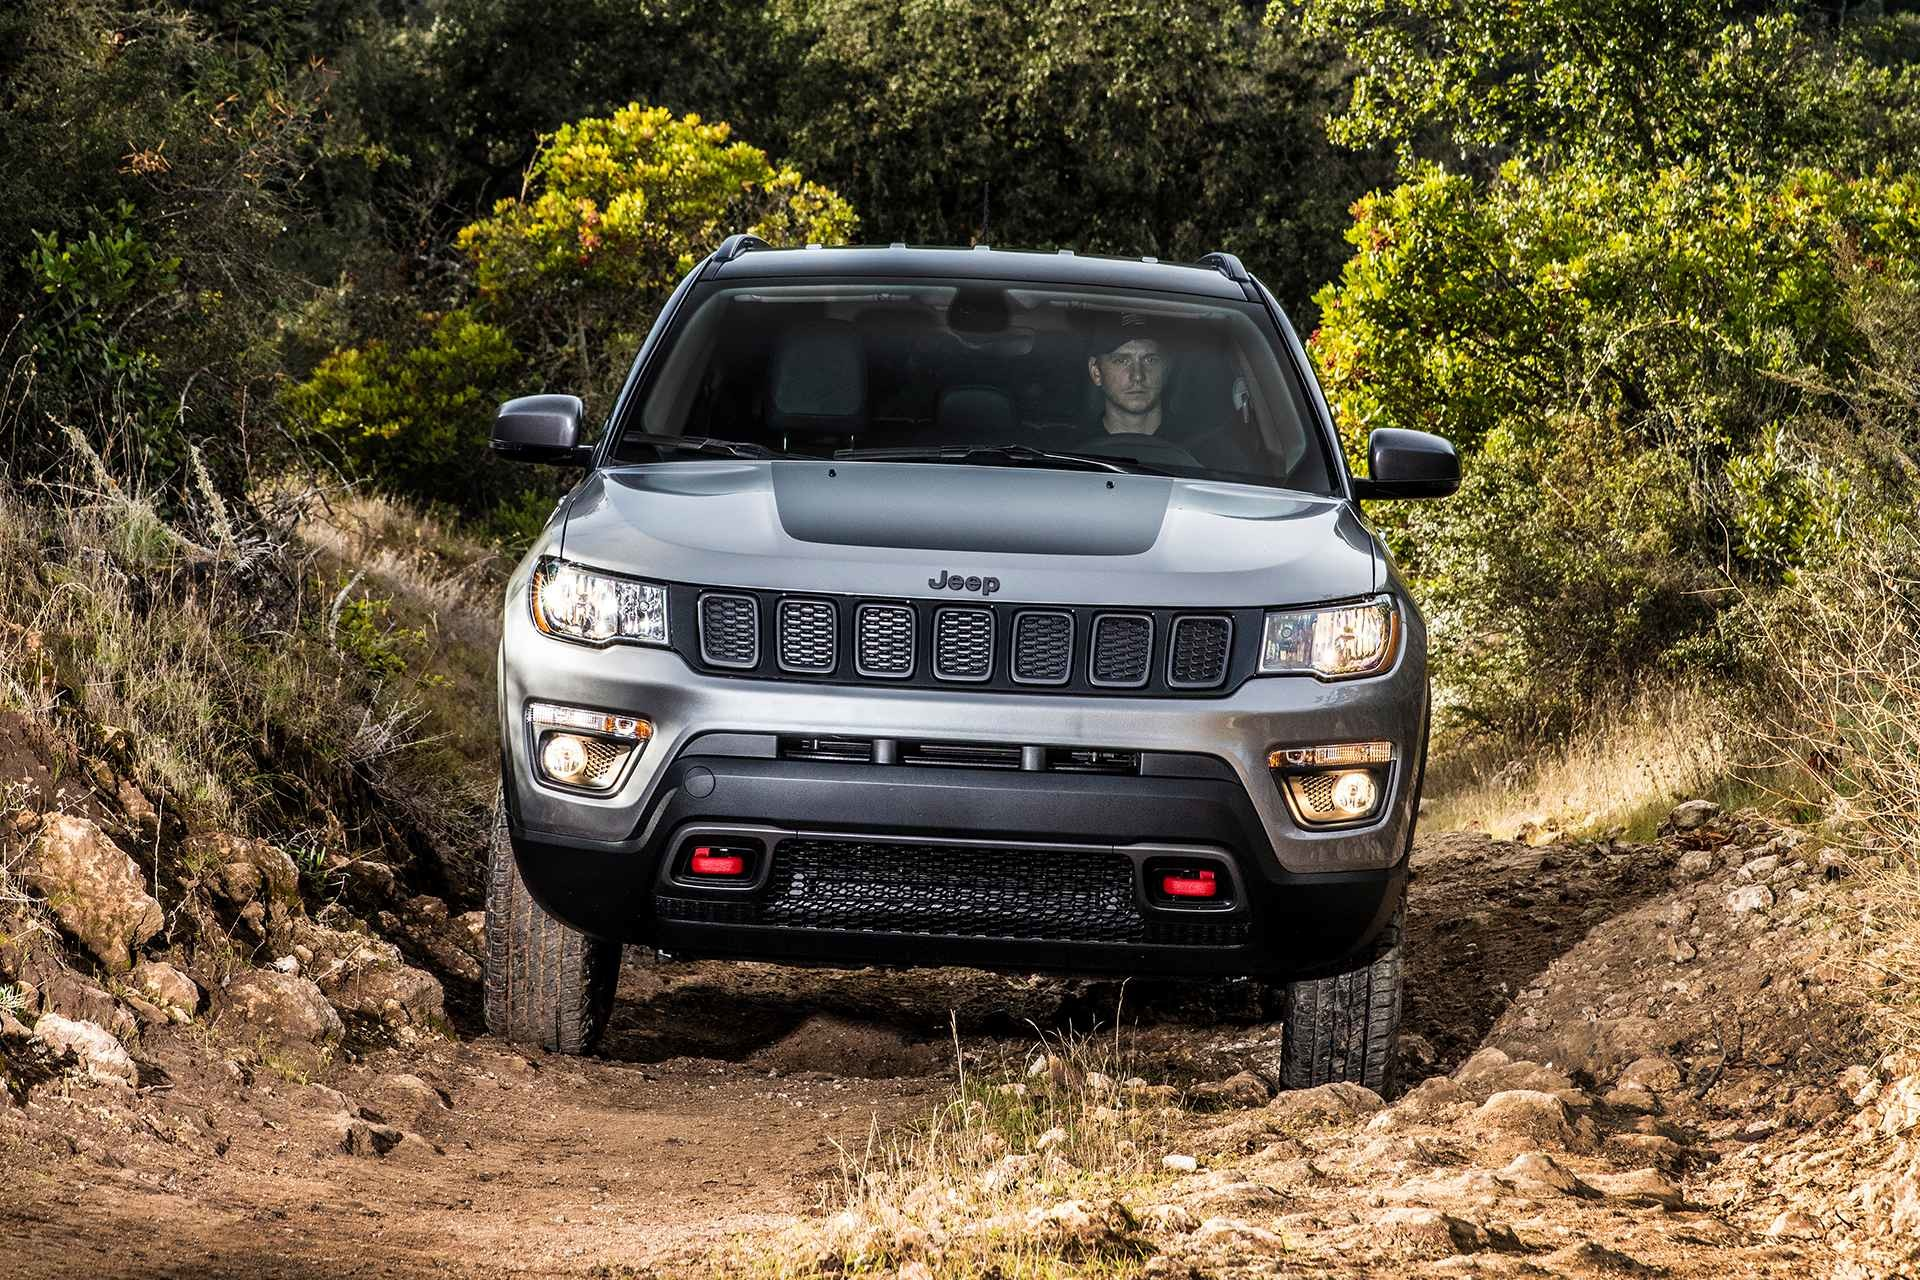 2019 Jeep Compass driving off-road